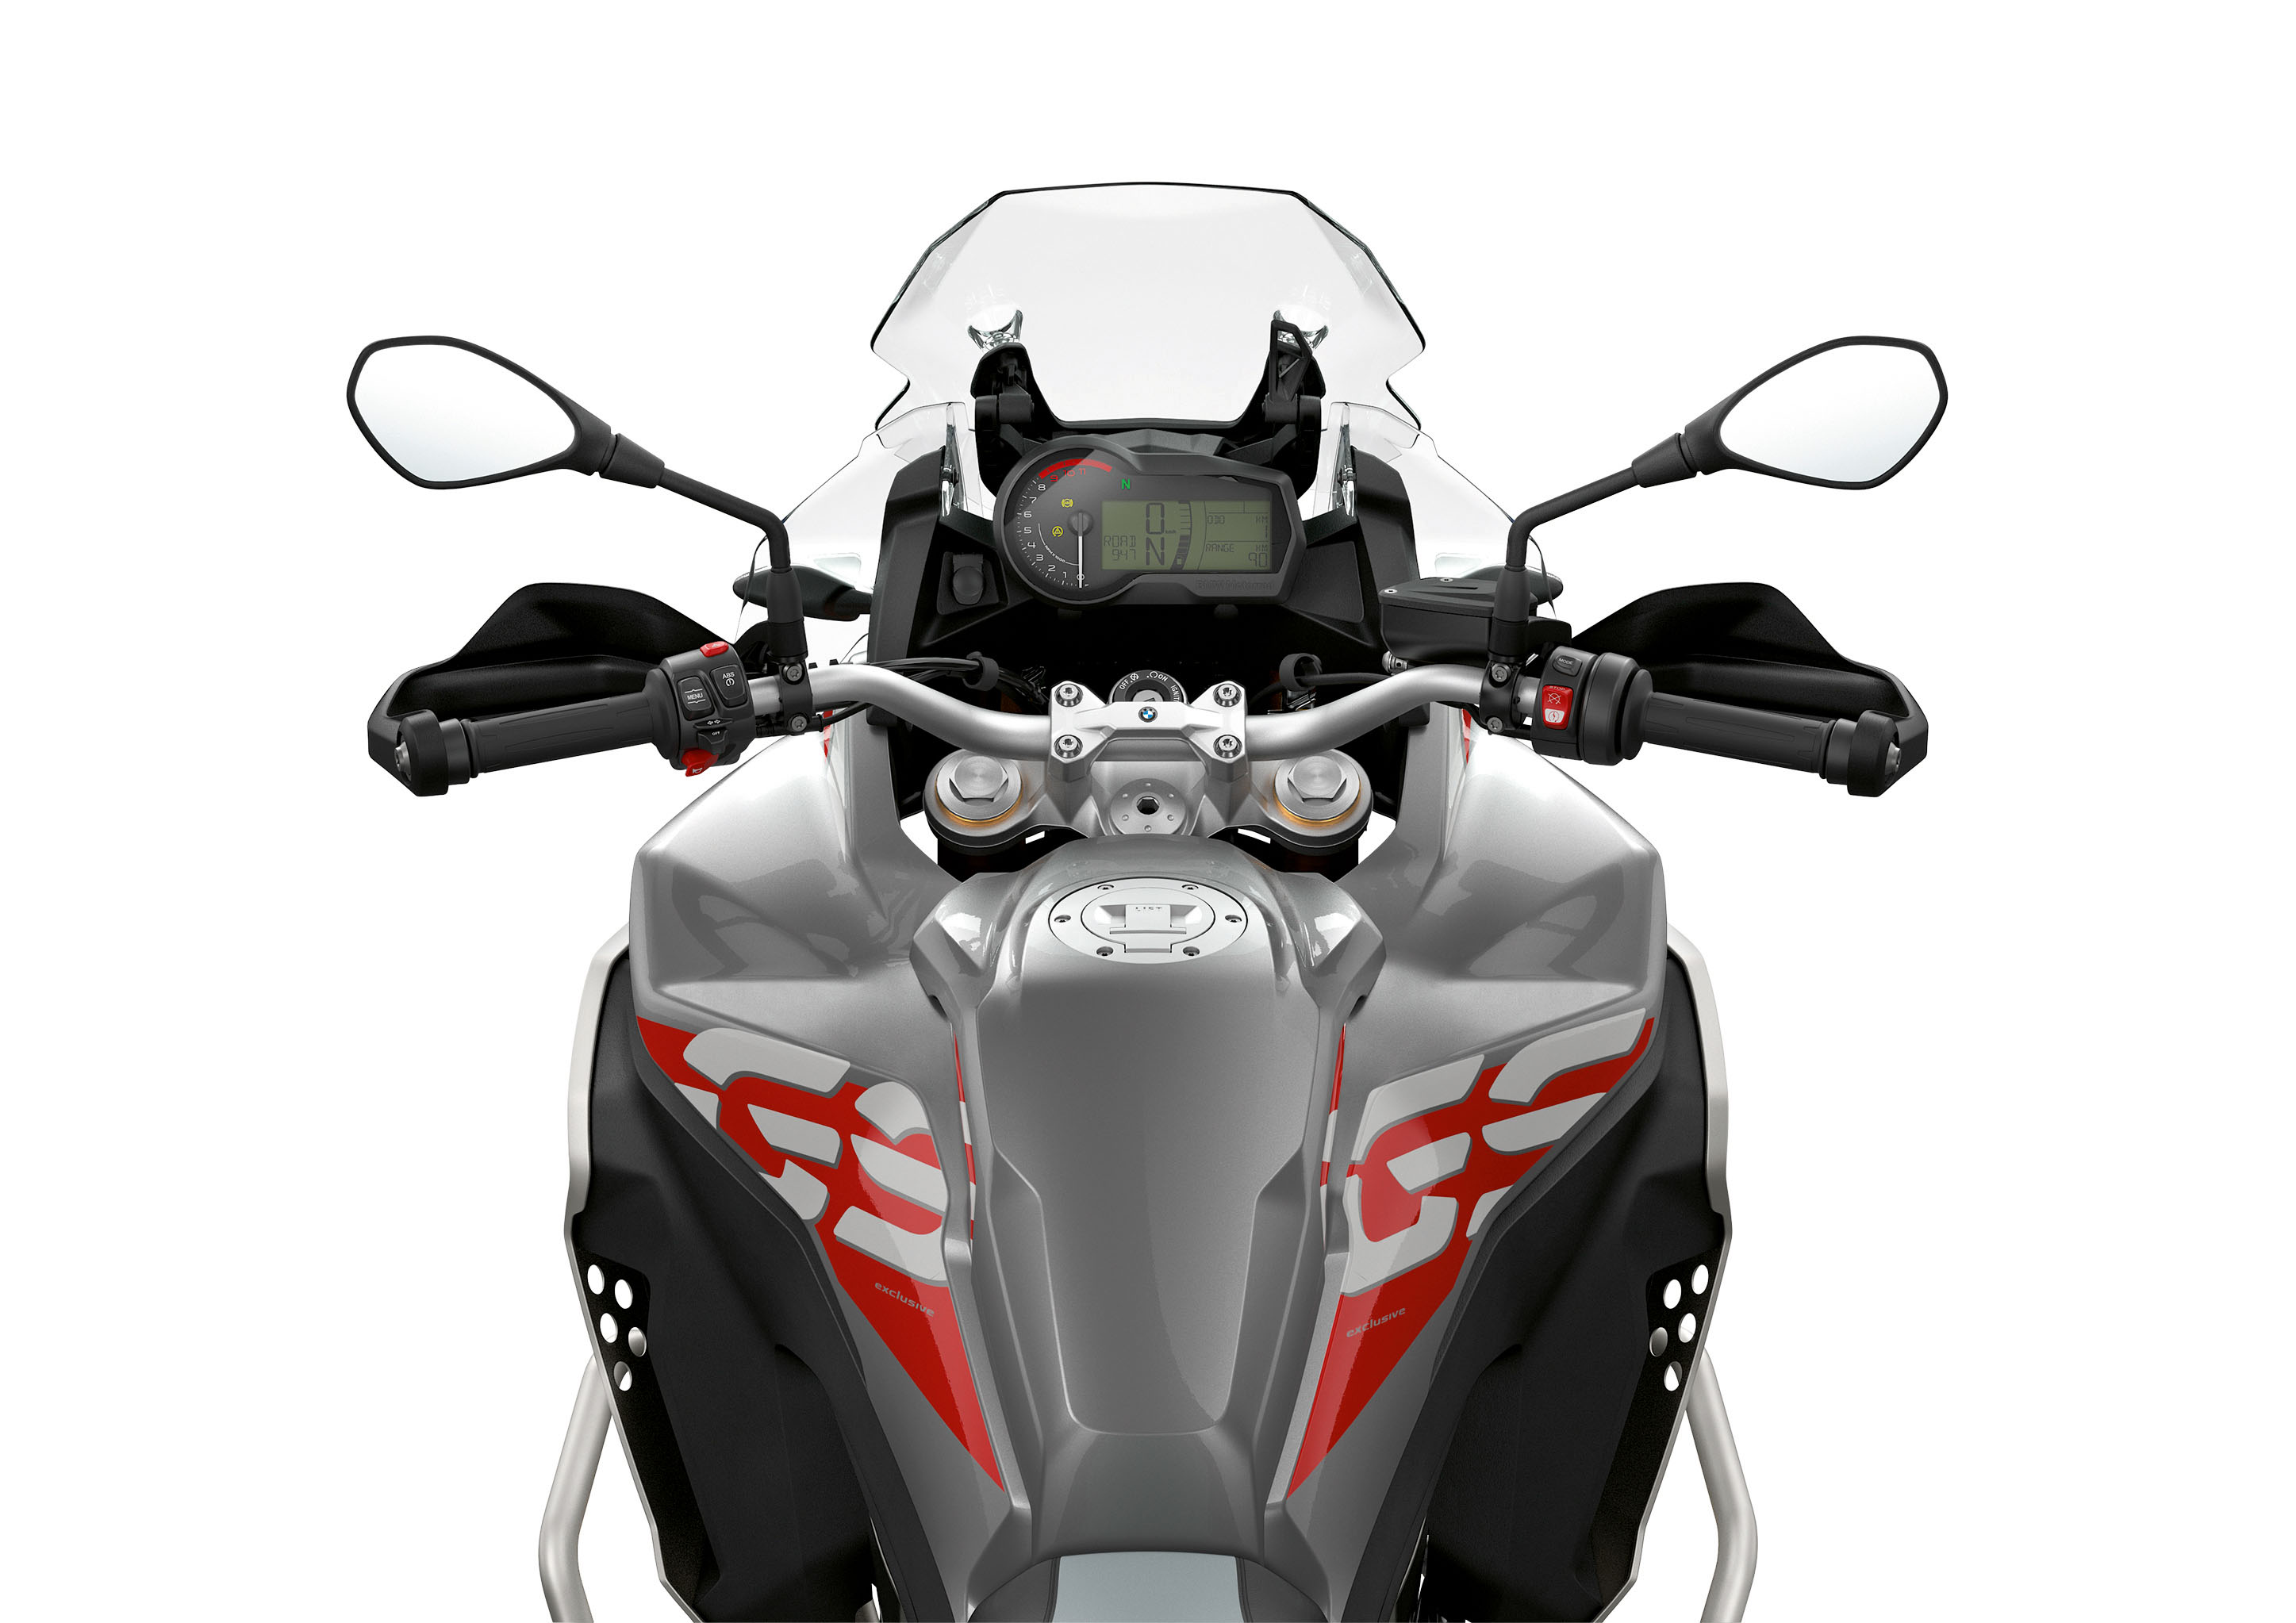 Fantastic 2019 Bmw F850Gs Adventure First Look Motorcycle Com Unemploymentrelief Wooden Chair Designs For Living Room Unemploymentrelieforg